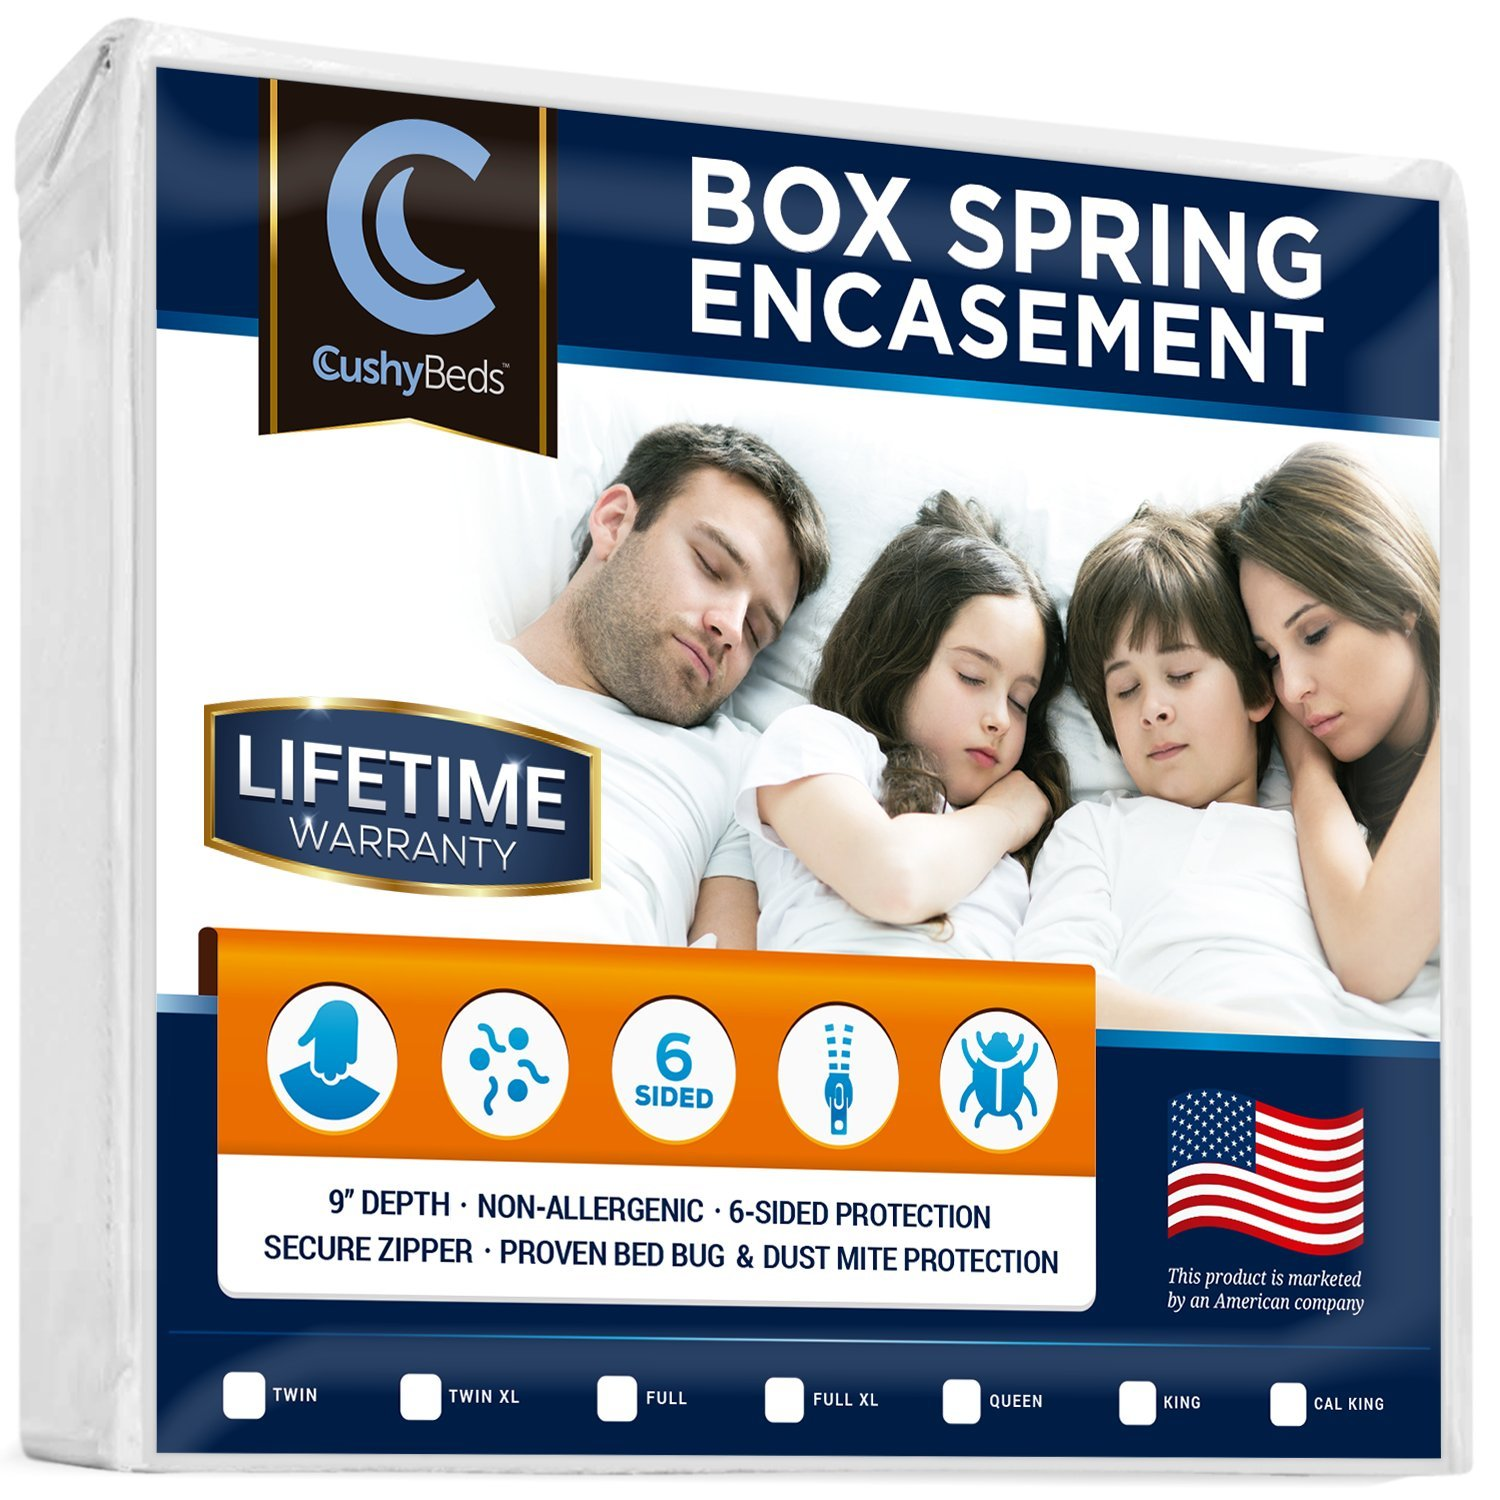 Premium Box Spring Encasement Zippered Cover by CushyBeds - Bed Bug, Dust Mites & Allergy Proof - 100% Waterproof, Hypoallergenic, 6-Sided Protection - Split Cal King Size - (Fitted 7-9'' Depth)